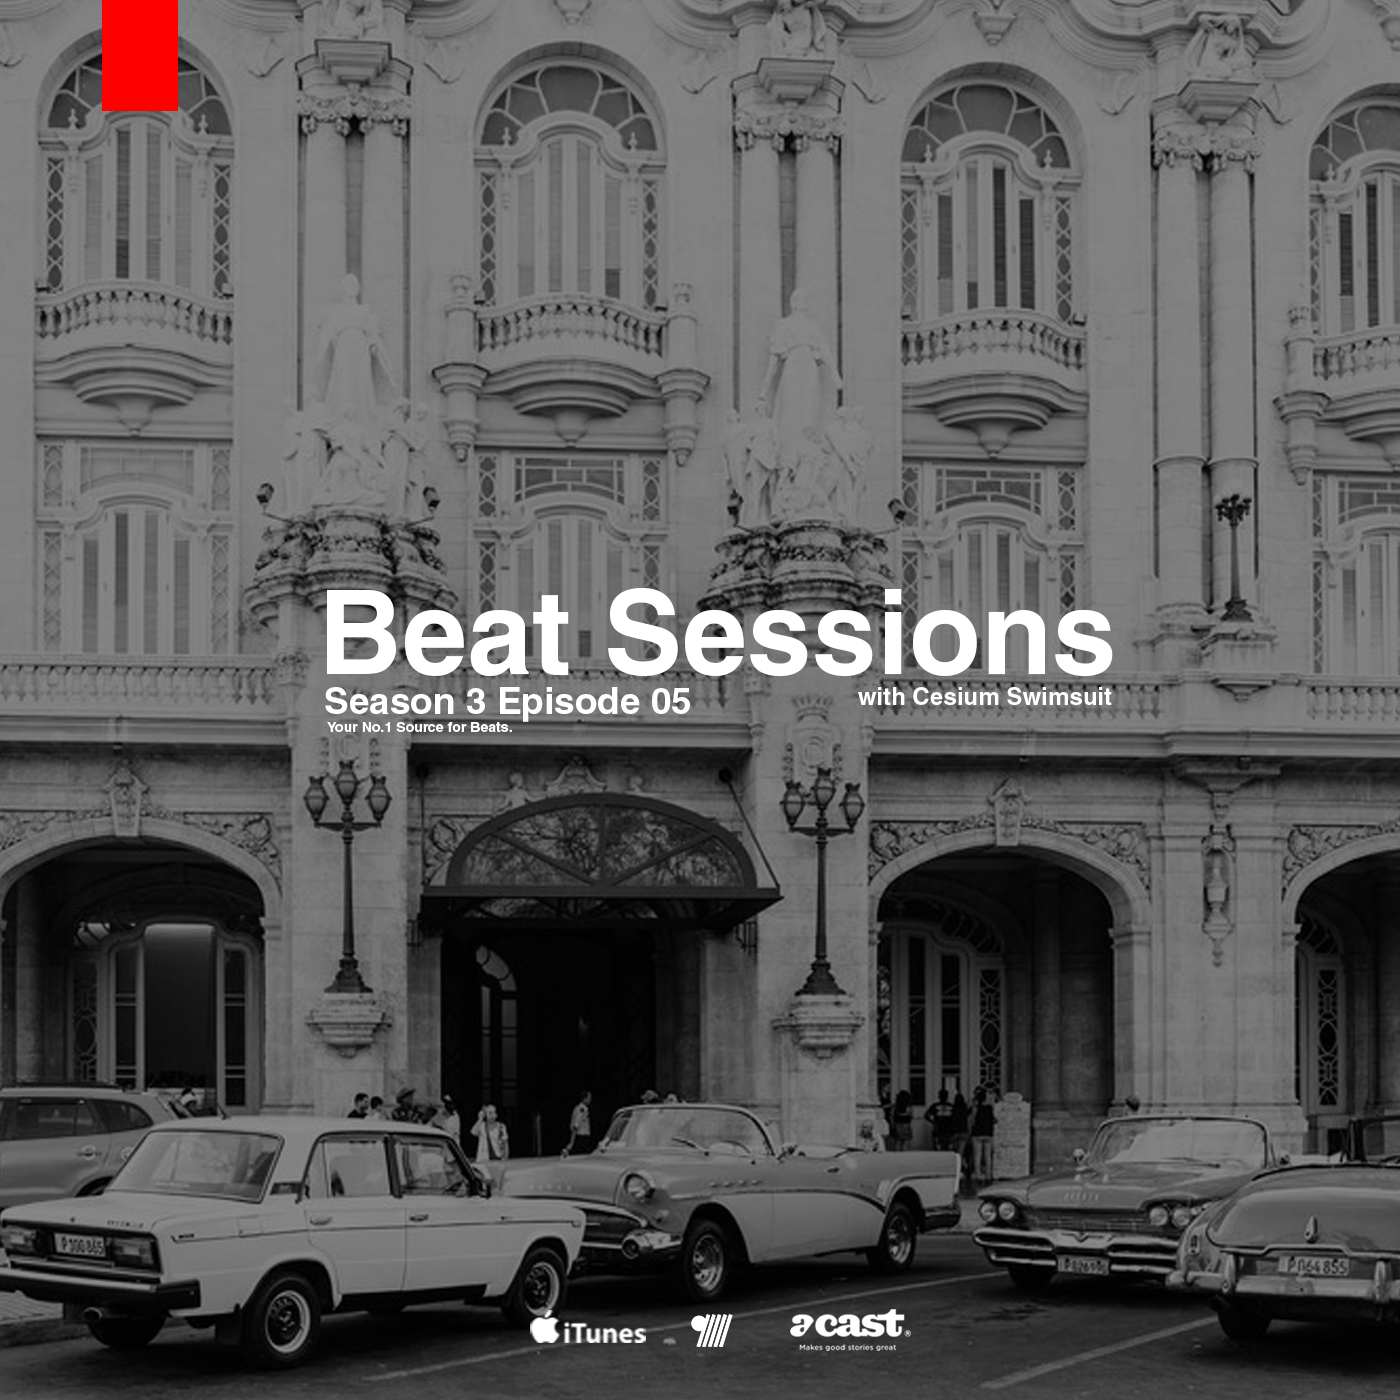 Beat Sessions: S03E05 with Cesium Swimsuit